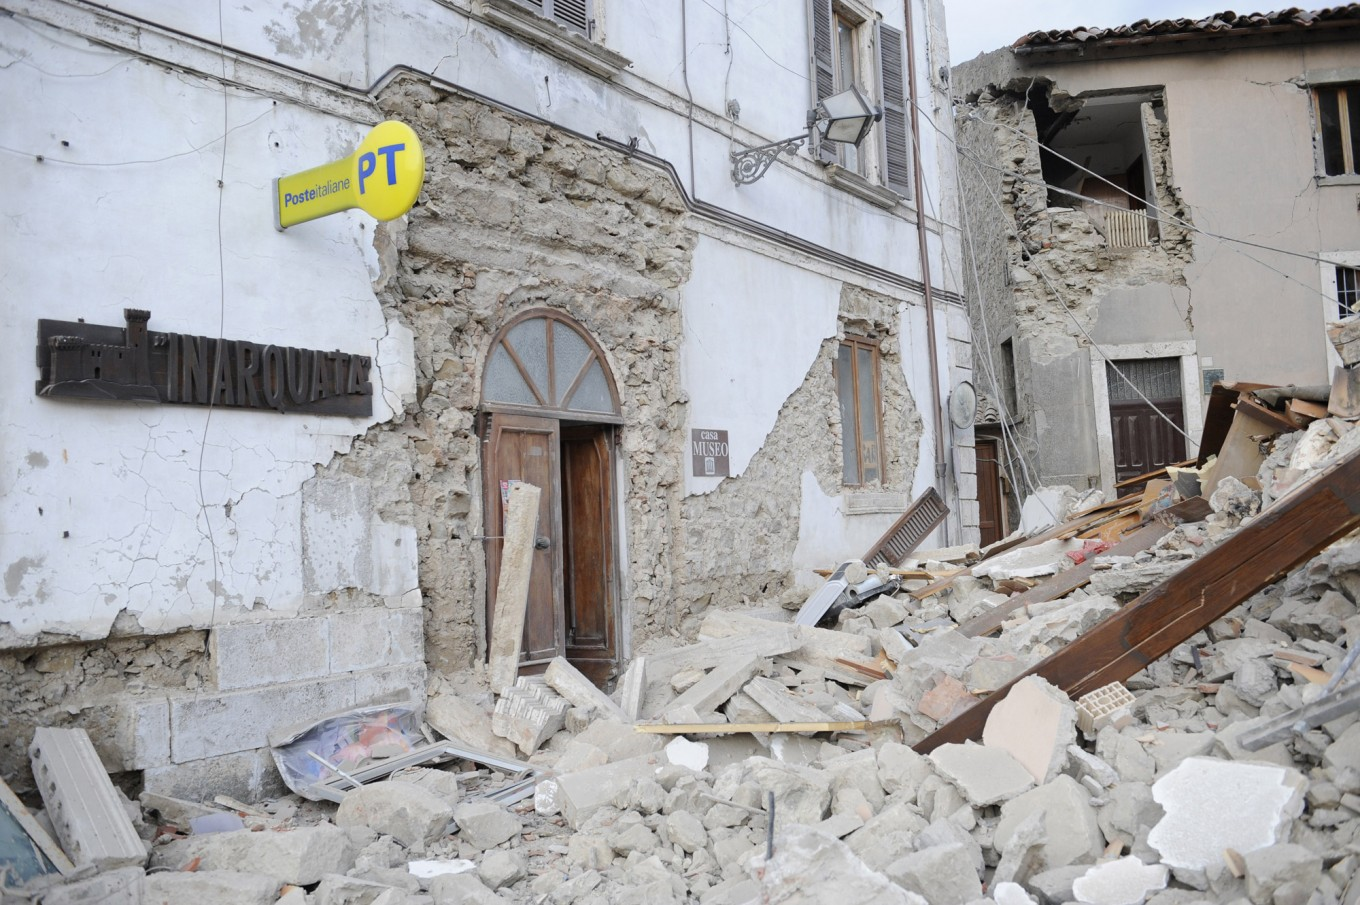 A post office is engulfed by rubbles in Arcuata del Tronto, central Italy, where a 6.1 earthquake struck just after 3:30 a.m., Wednesday, Aug. 24, 2016. The quake was felt across a broad section of central Italy, including the capital Rome where people in homes in the historic center felt a long swaying followed by aftershocks. AP Photo/Sandro Perozzi